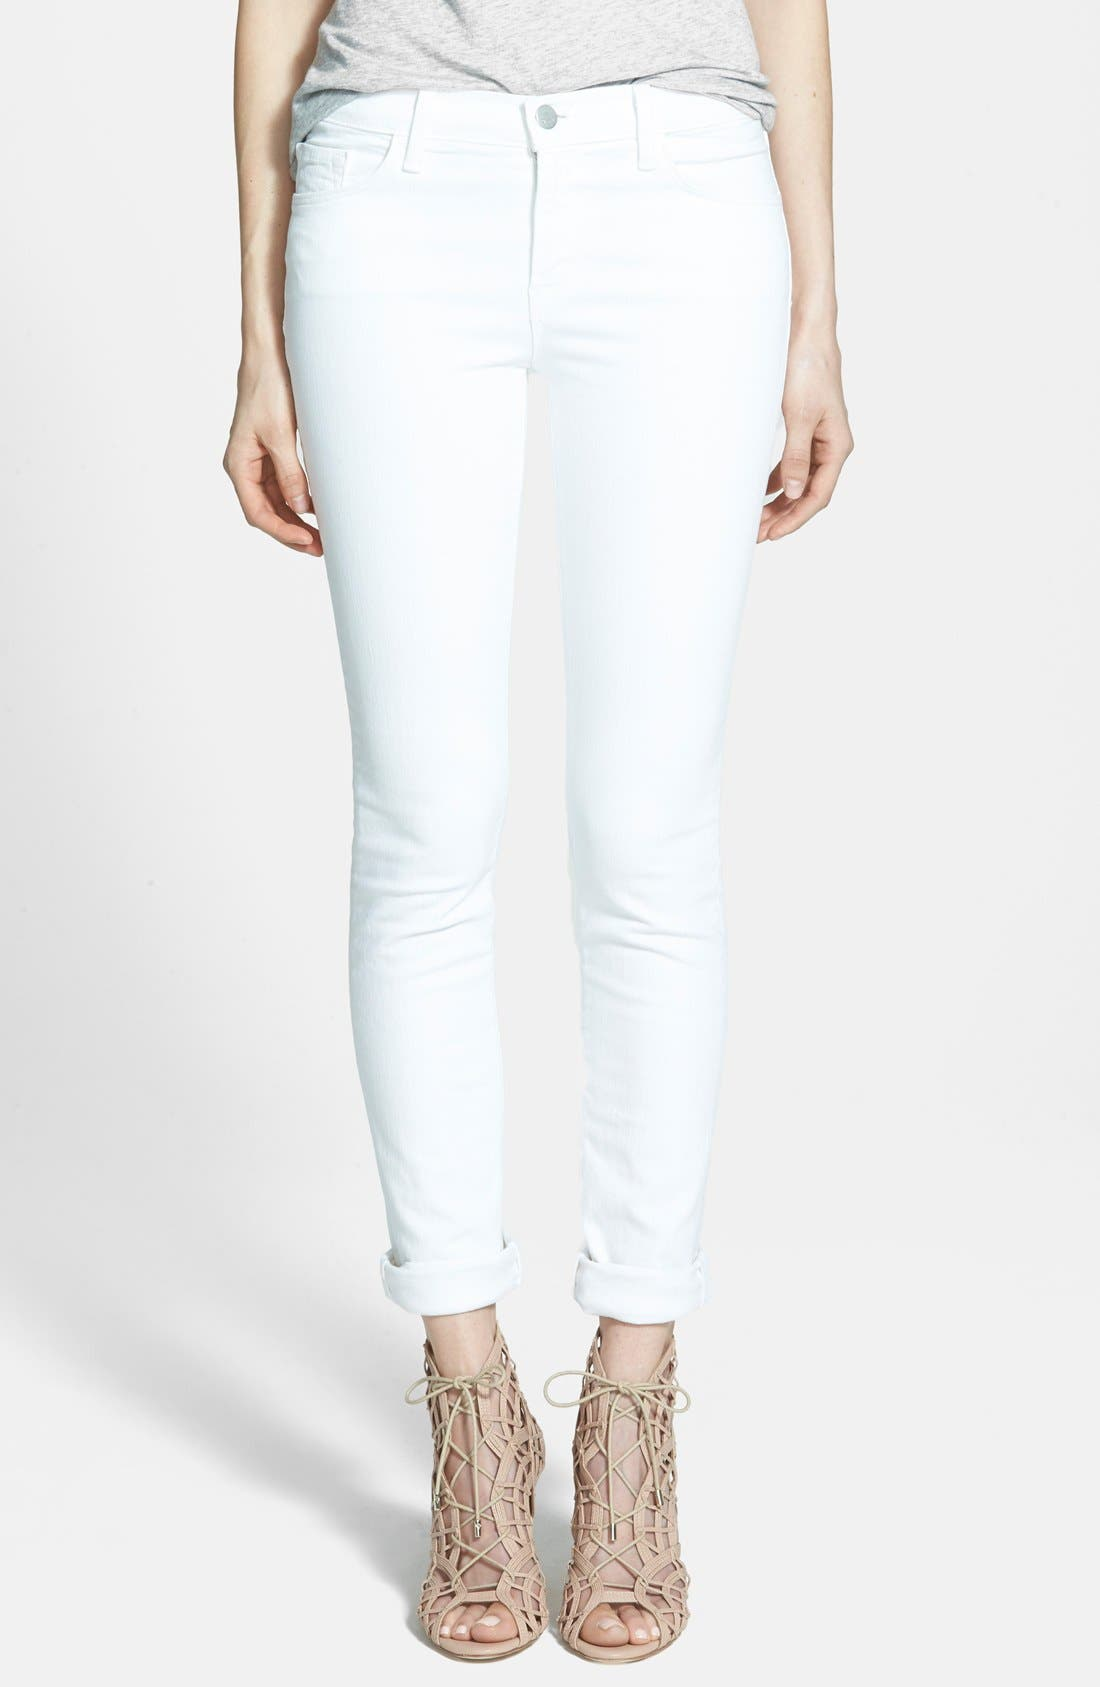 '811' Mid-Rise Stovepipe Jeans,                             Main thumbnail 1, color,                             100